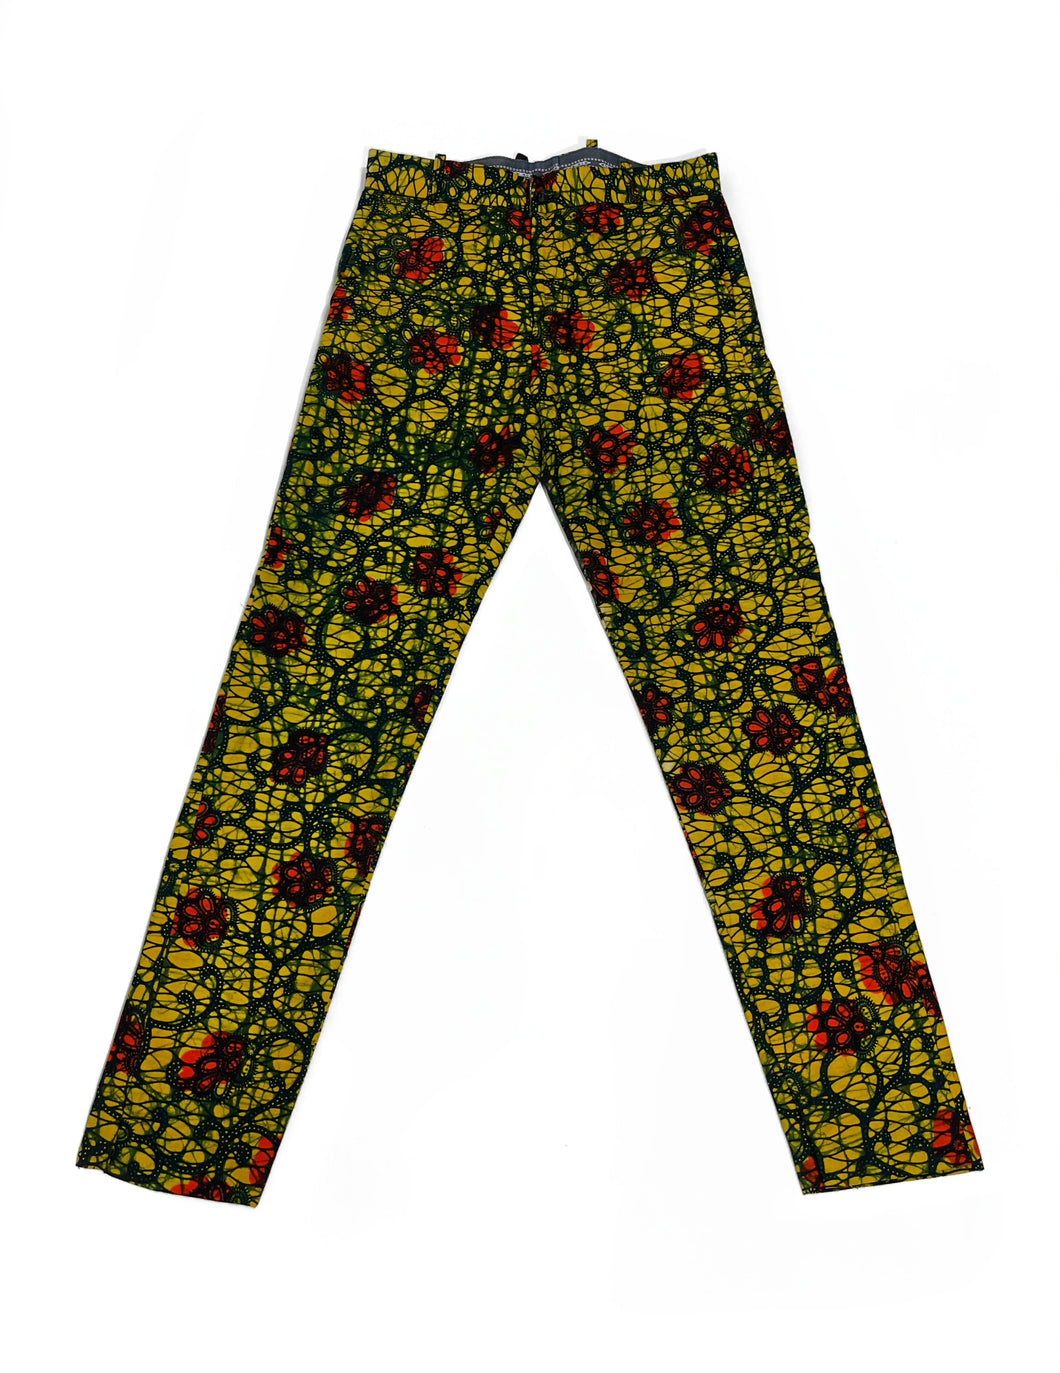 CUSTOM TASWIRA TROUSERS